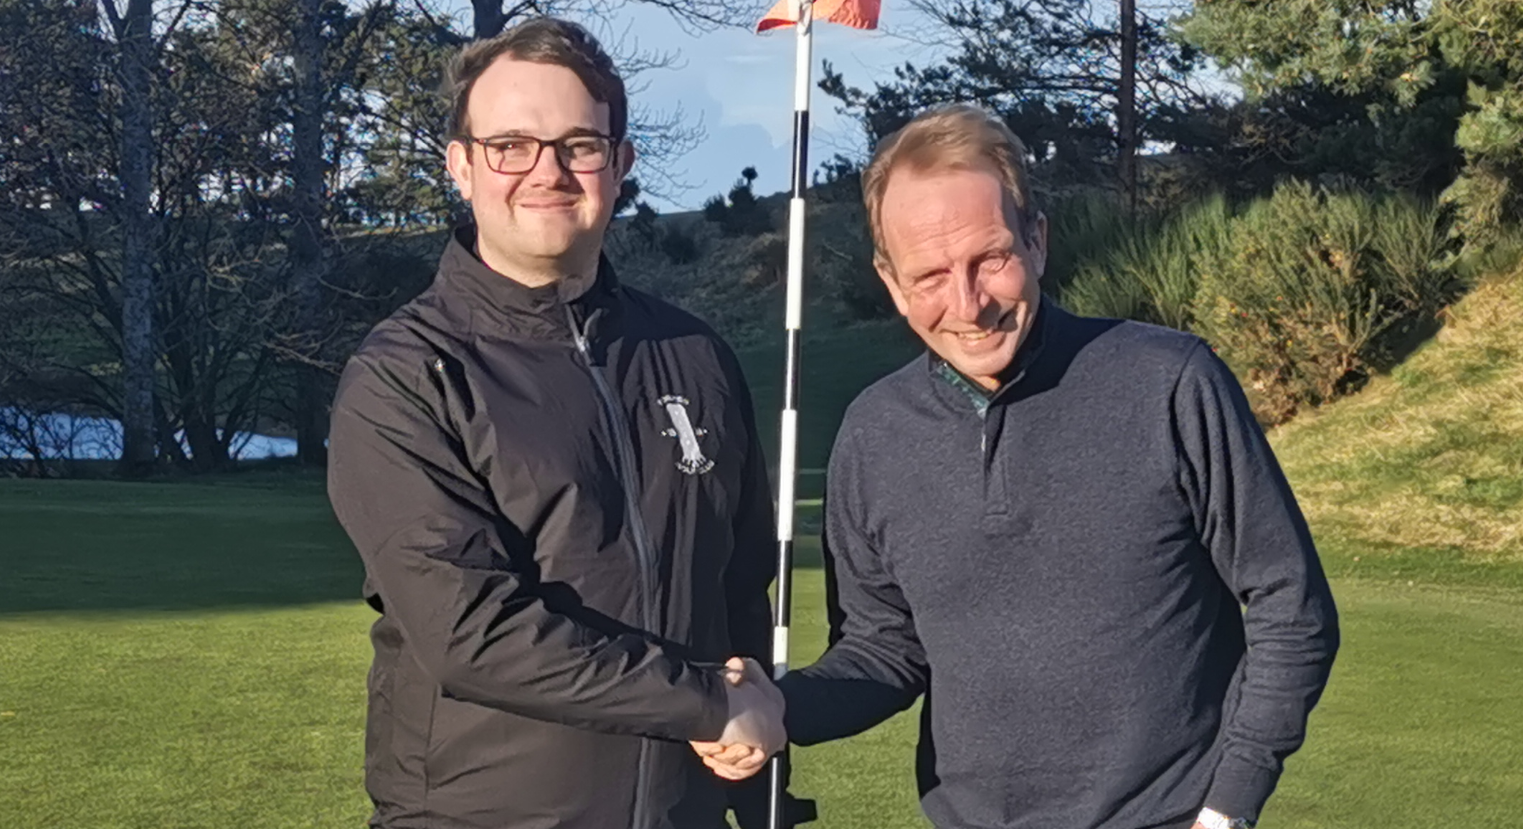 Sean Blacklaw, manager Forres Golf Club, pictured left, with teaching professional David Torrance.